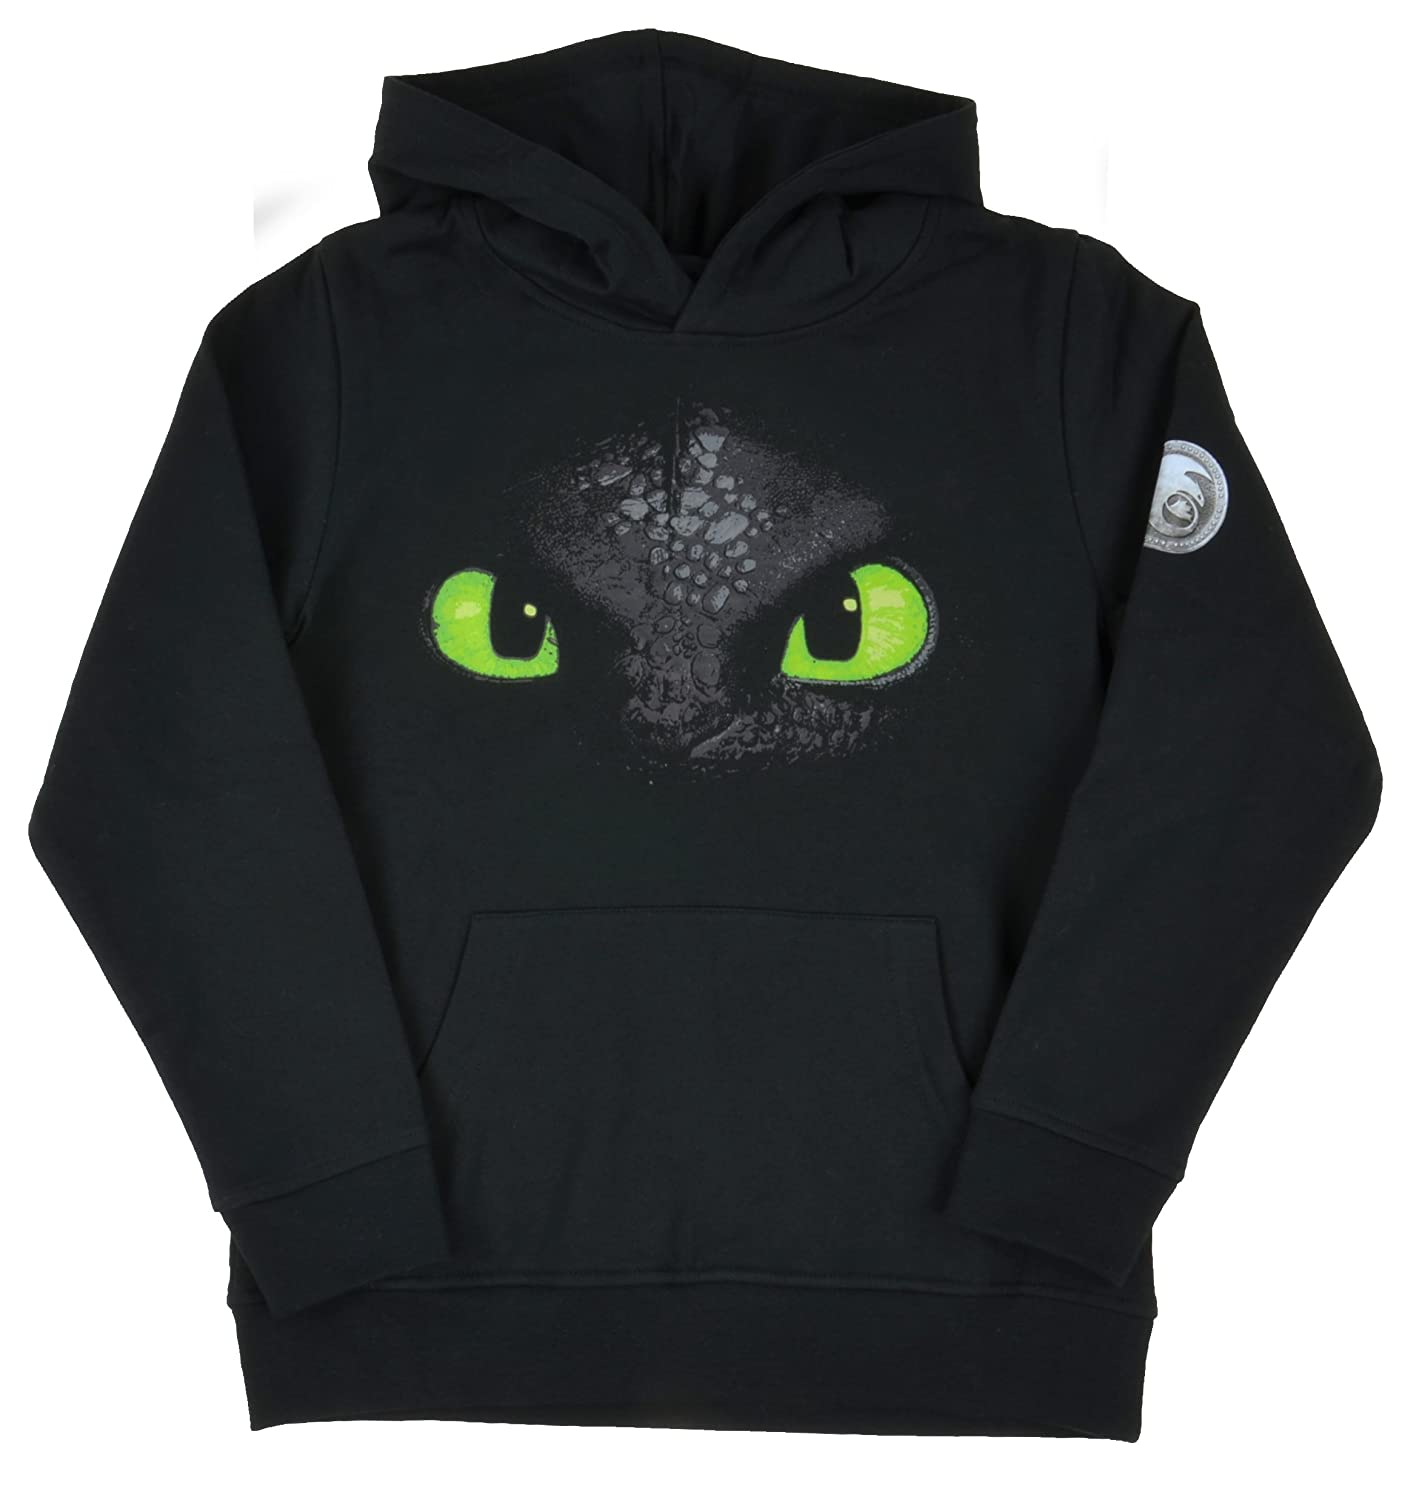 Dreamworks Dragons Hoodie Toothless faccia